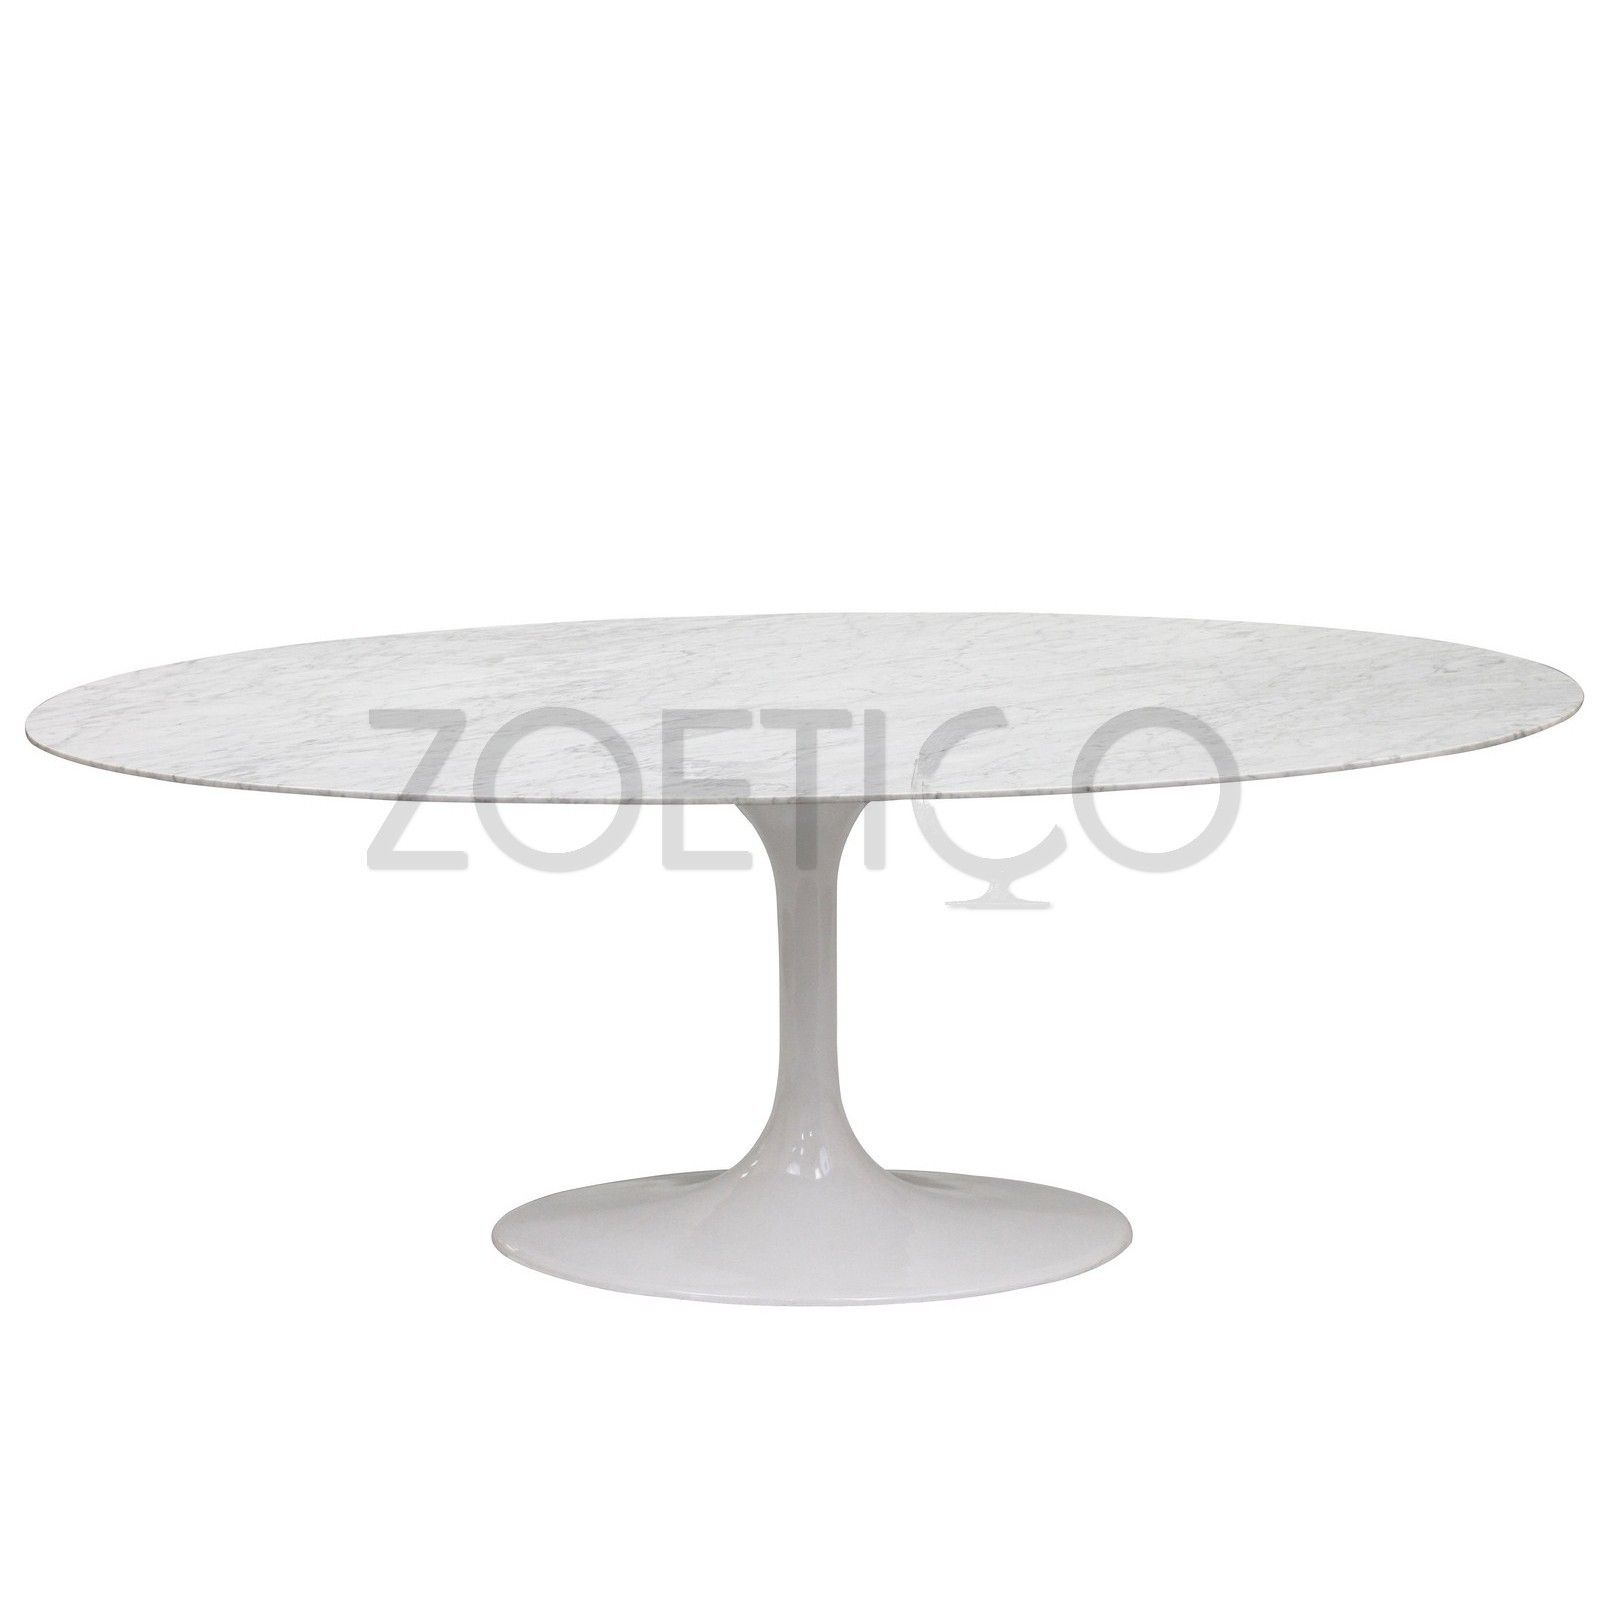 Saarinen Style 78 Oval Marble Tulip Table Multiple Colors Designer Reproduction Oval Marble Tulip Table Furniture Design Modern Marble Tulip Table